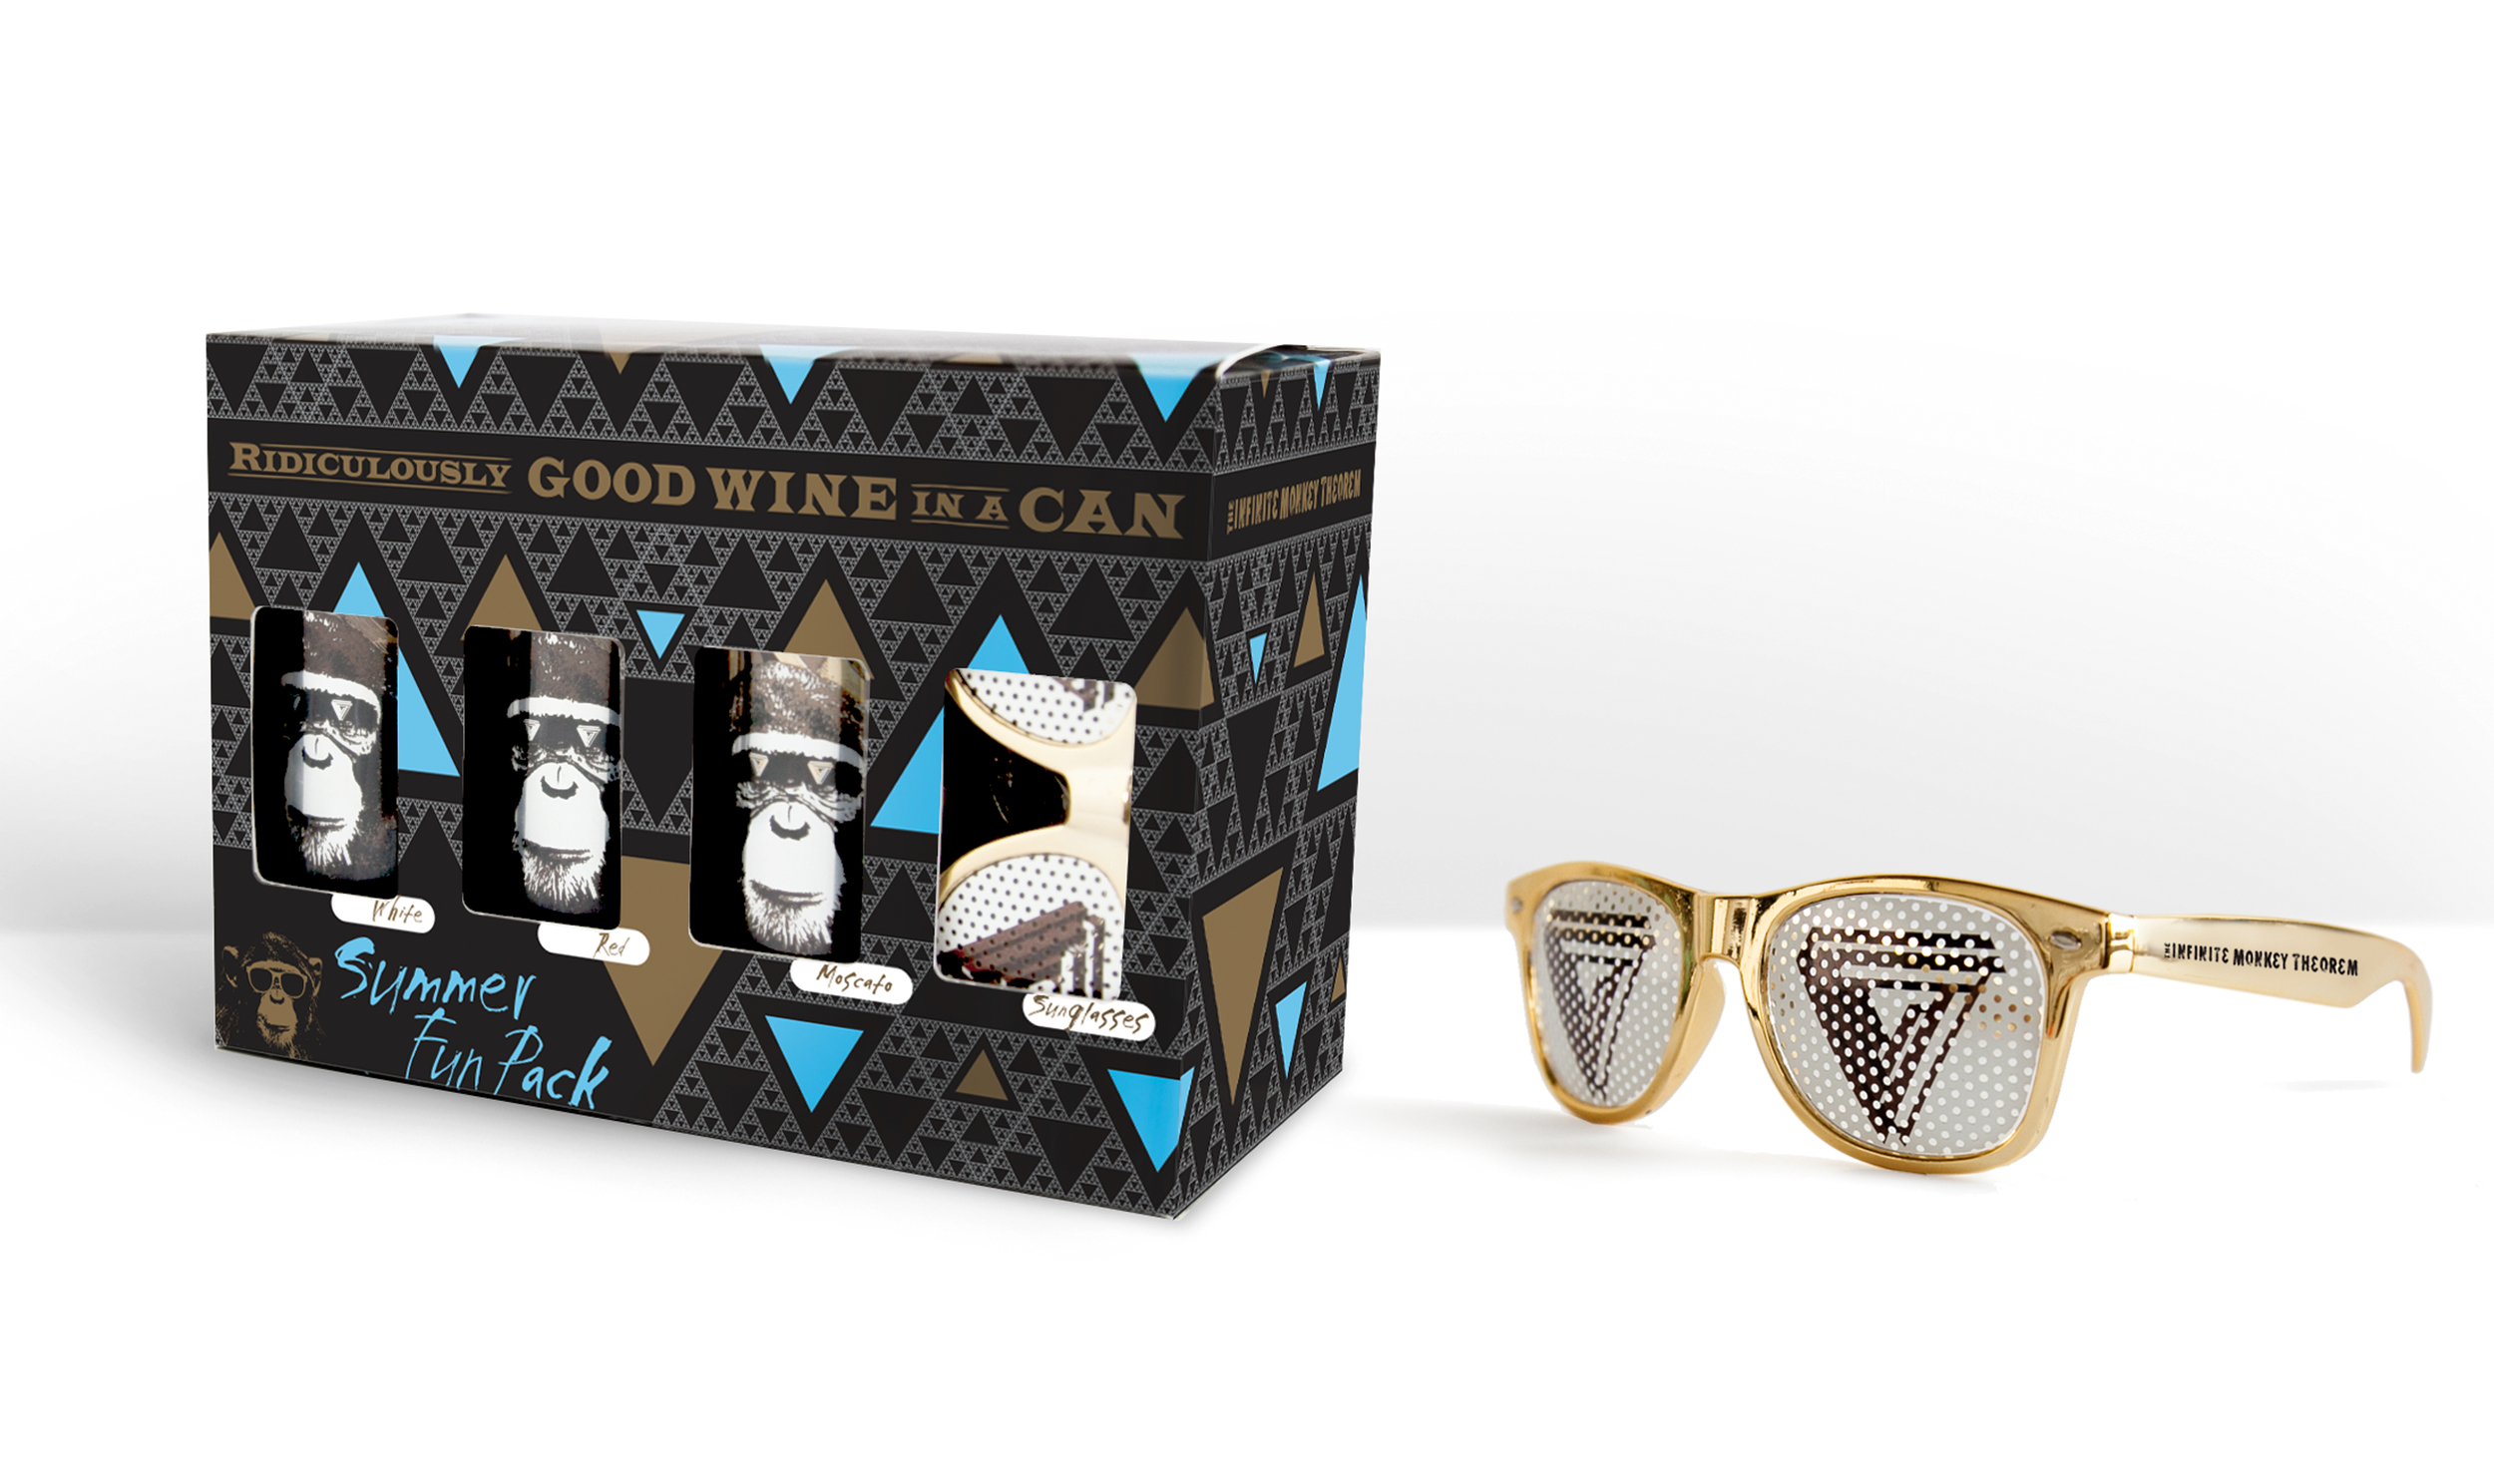 Modern package design for Infinite Monkey Theorem's 6-pack box of wine.